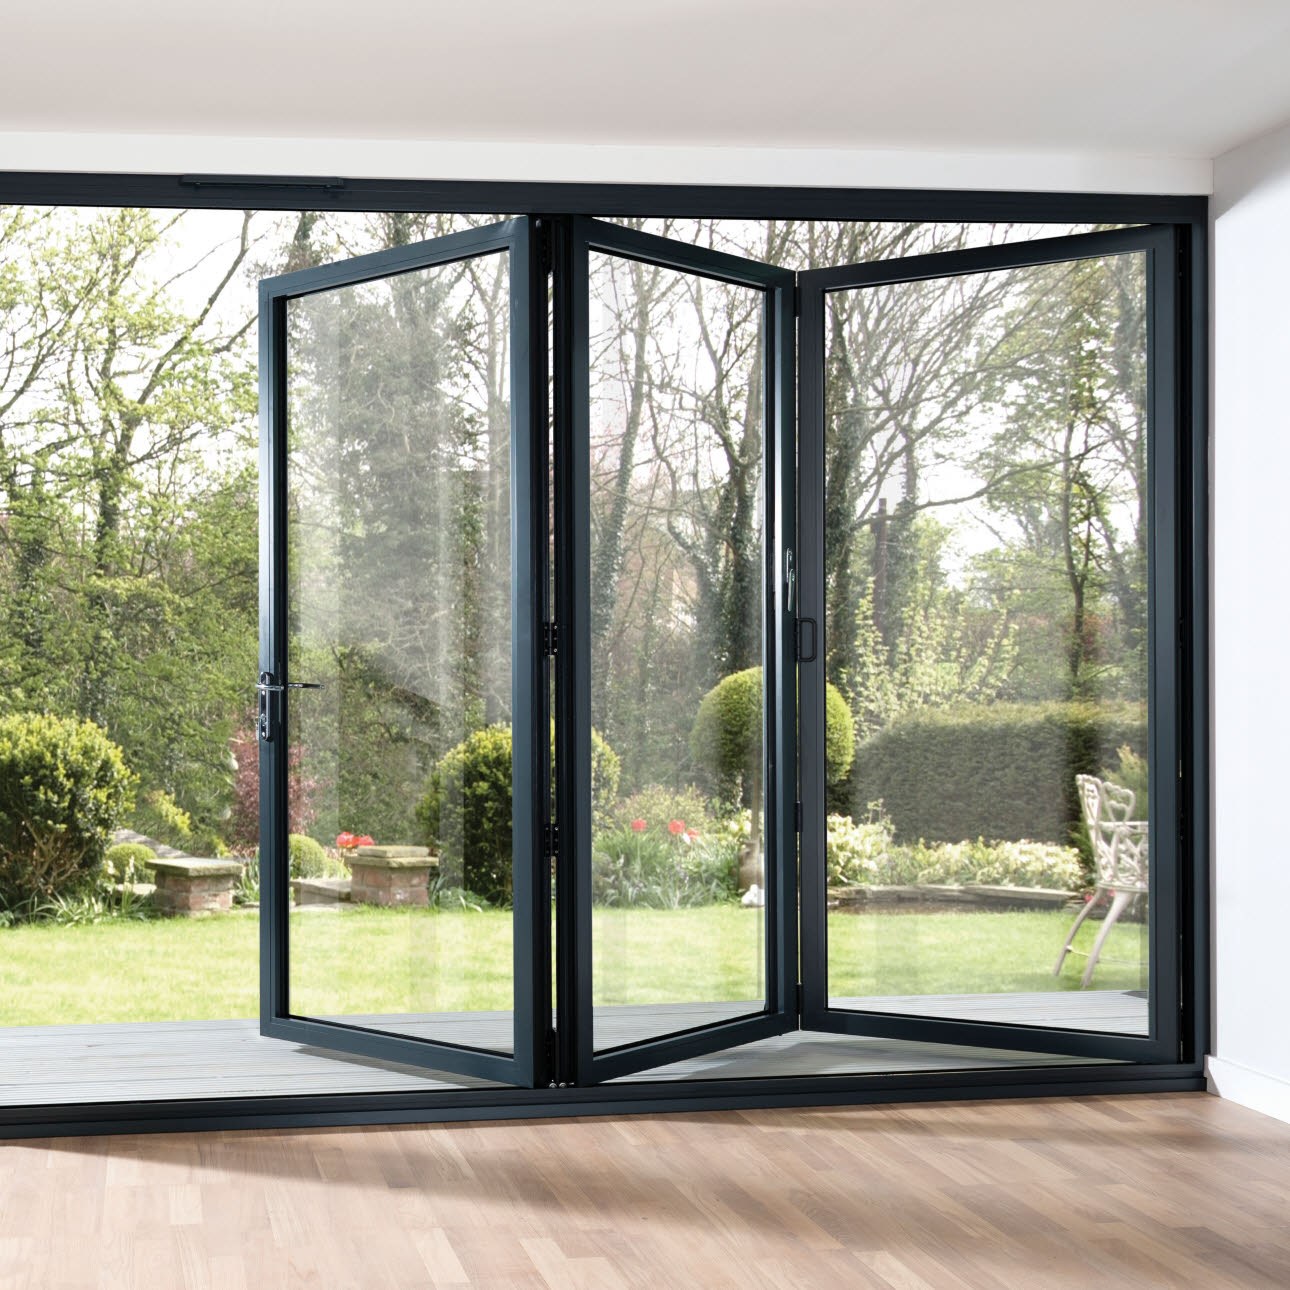 Doors Exterior Folding : Folding french doors exterior the door that brings